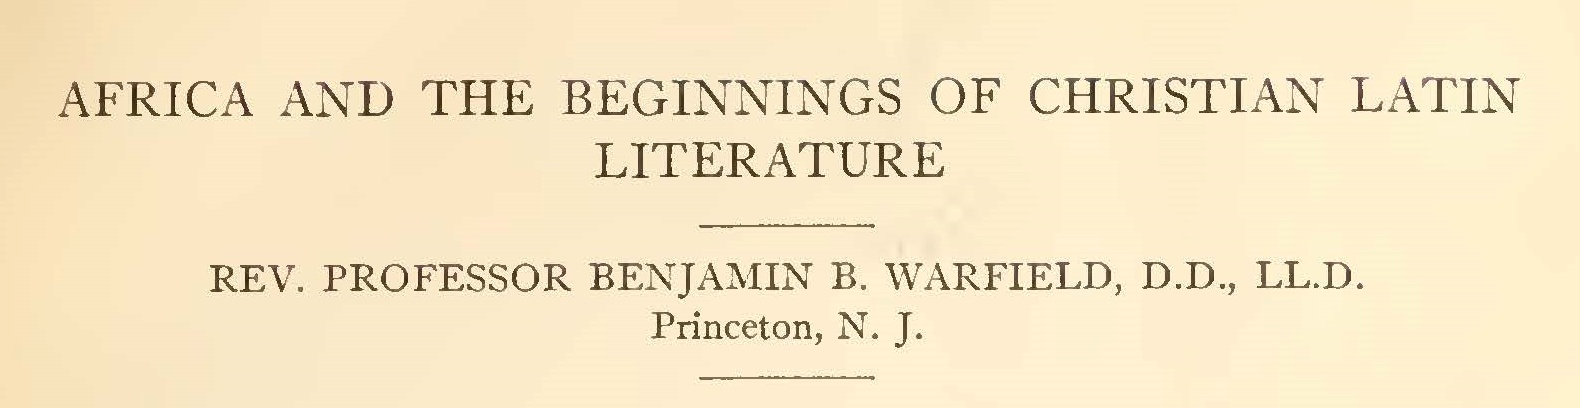 Warfield, Benjamin Breckinridge, Africa and the Beginnings of Christian Latin Literature Title Page.jpg